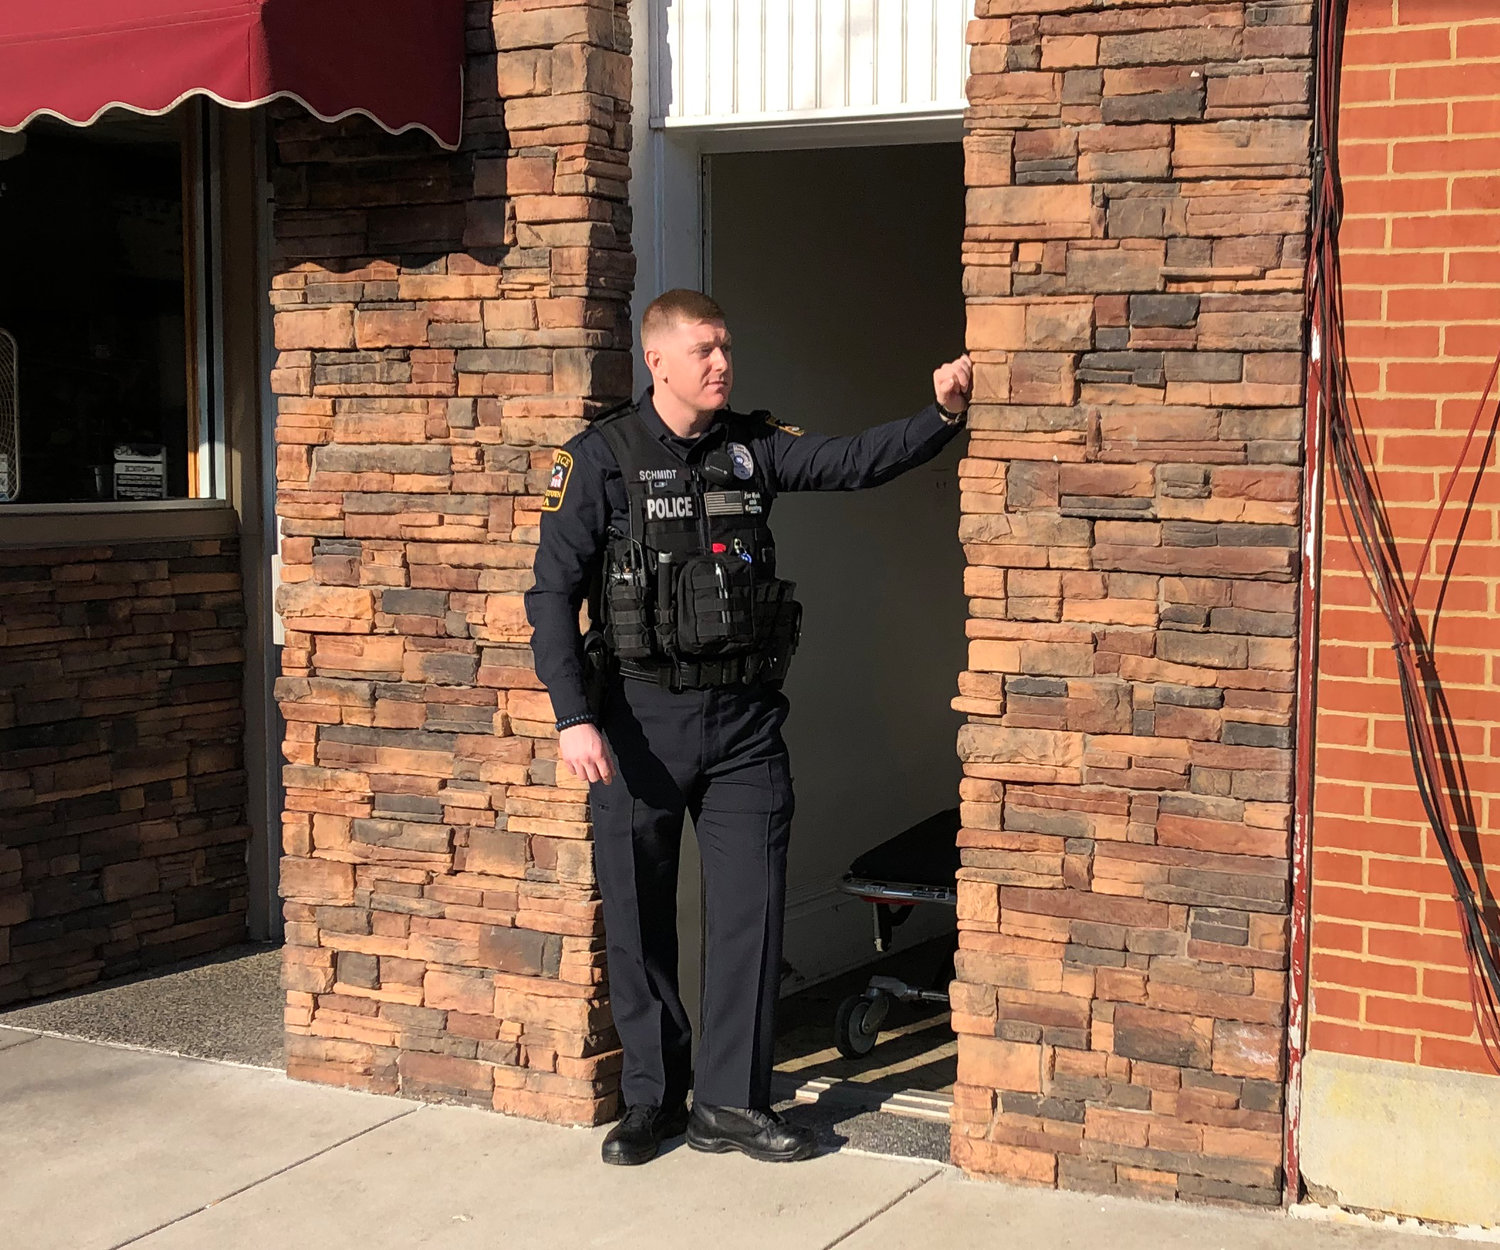 Police Officer Robert Schmidt stands watch outside 21 S. Union St. on Thursday morning. Authorities say there was a death in an apartment on the second floor.